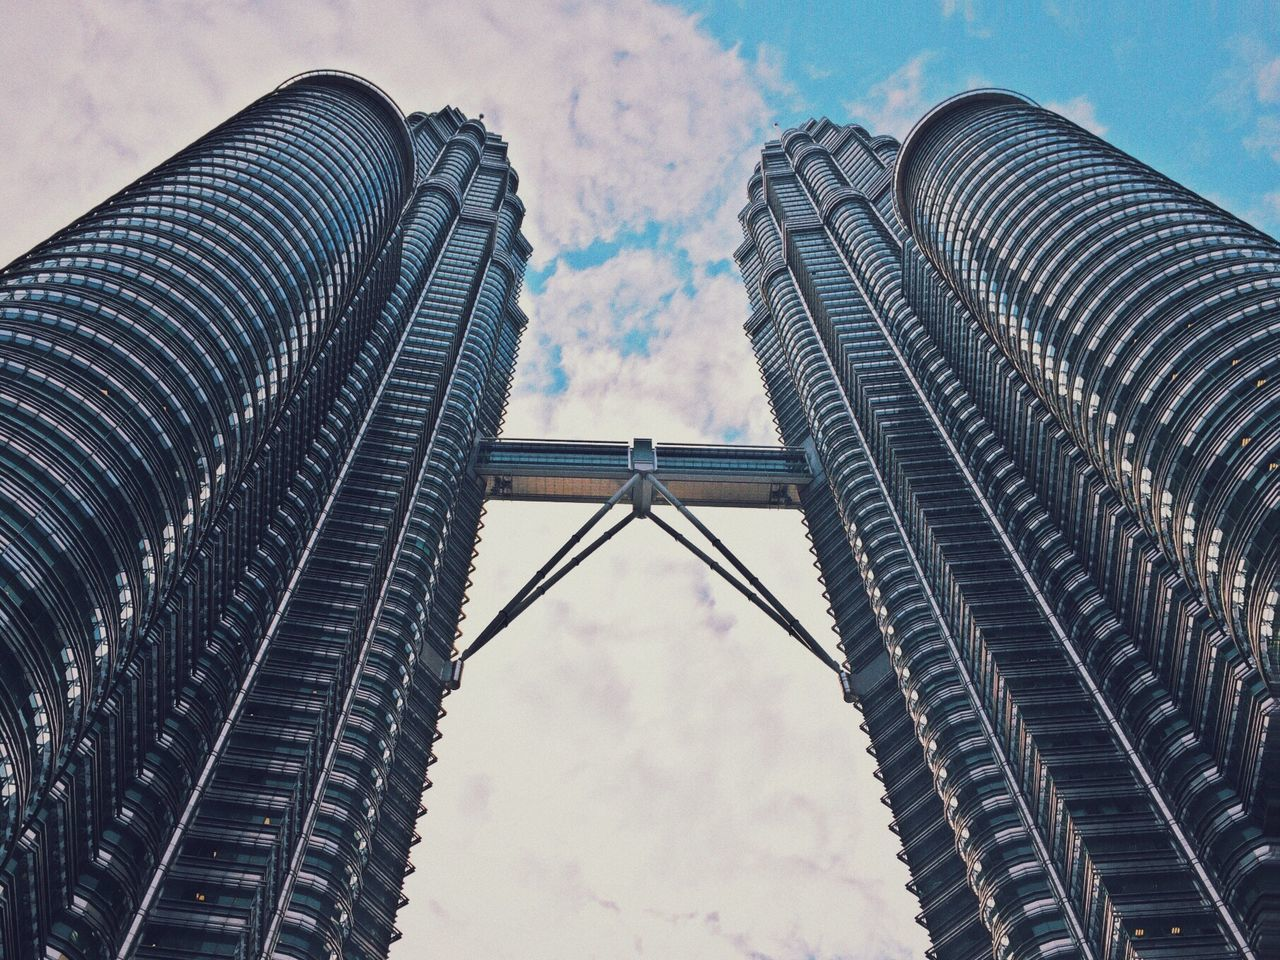 architecture, built structure, building exterior, low angle view, skyscraper, sky, tall - high, modern, city, tower, office building, cloud - sky, capital cities, famous place, travel destinations, international landmark, building, day, reflection, cloudy